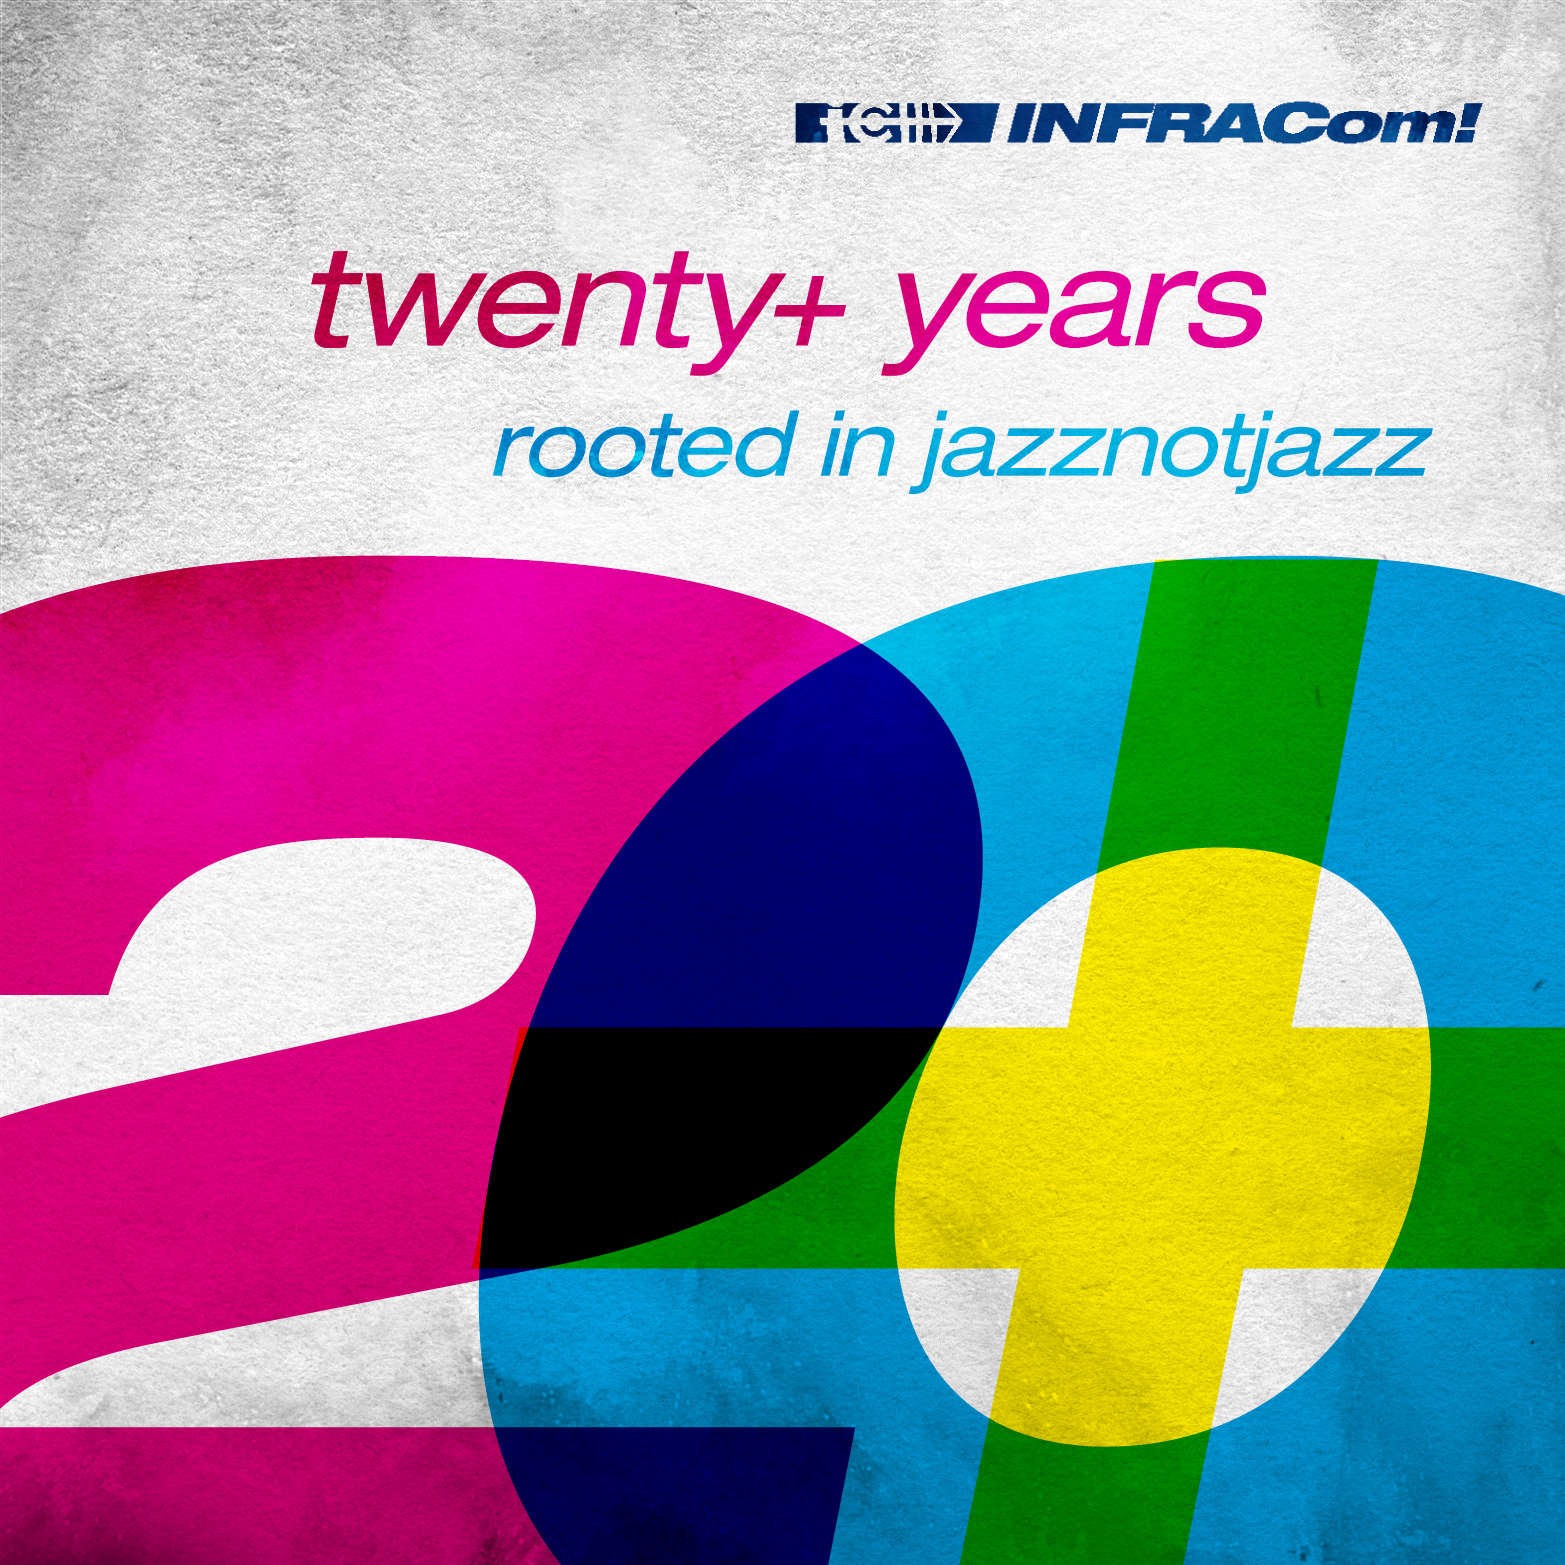 <strong>INFRACom! pres. twenty+ years rooted in jazznotjazz</strong><br /> / <strong>V.A.</strong><br /><br />